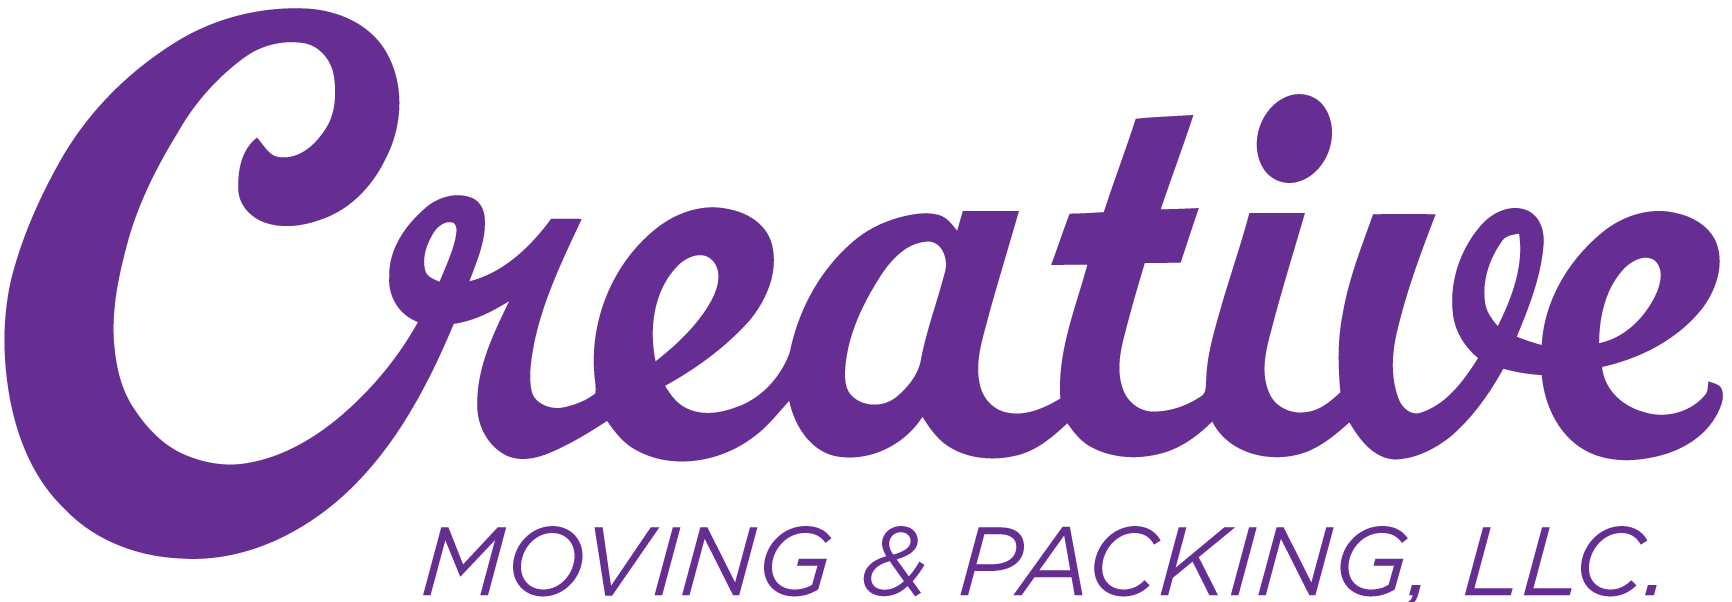 Creative-Moving-&-Packing-Logo